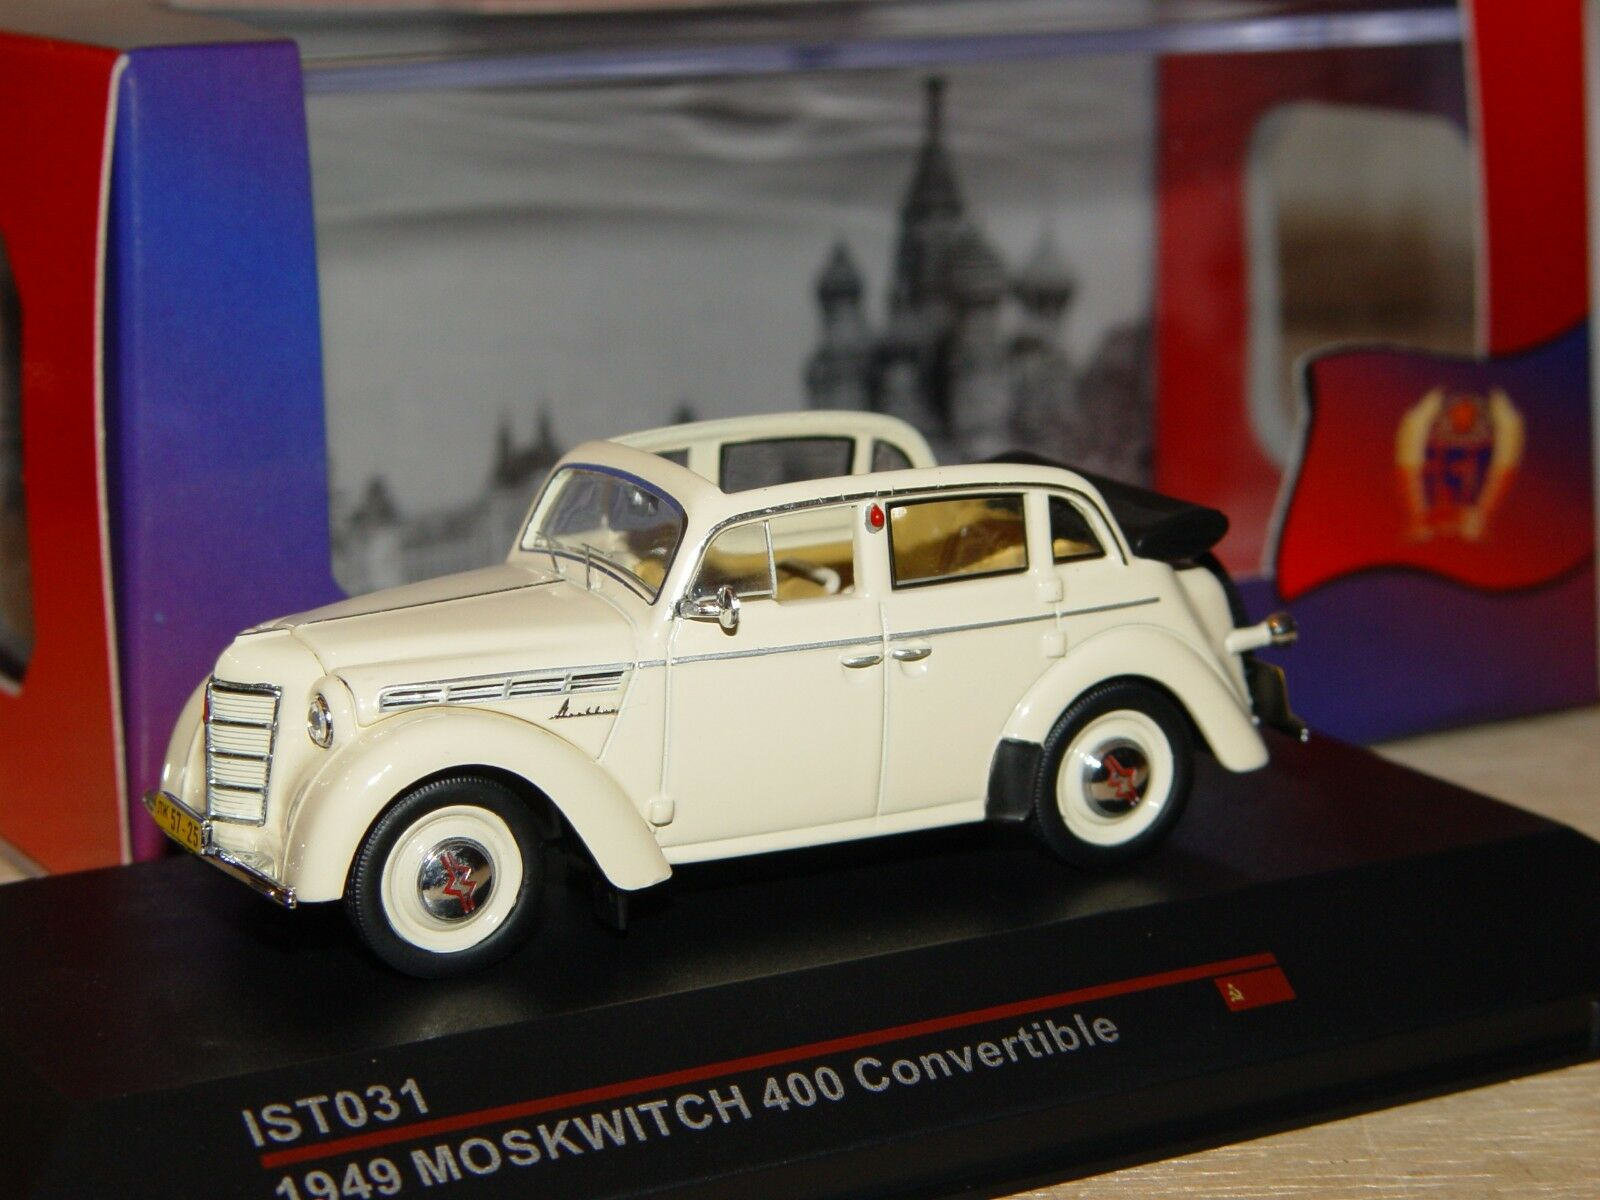 MOSKVITCH 400 congreenible 1949 1 43 IST Models